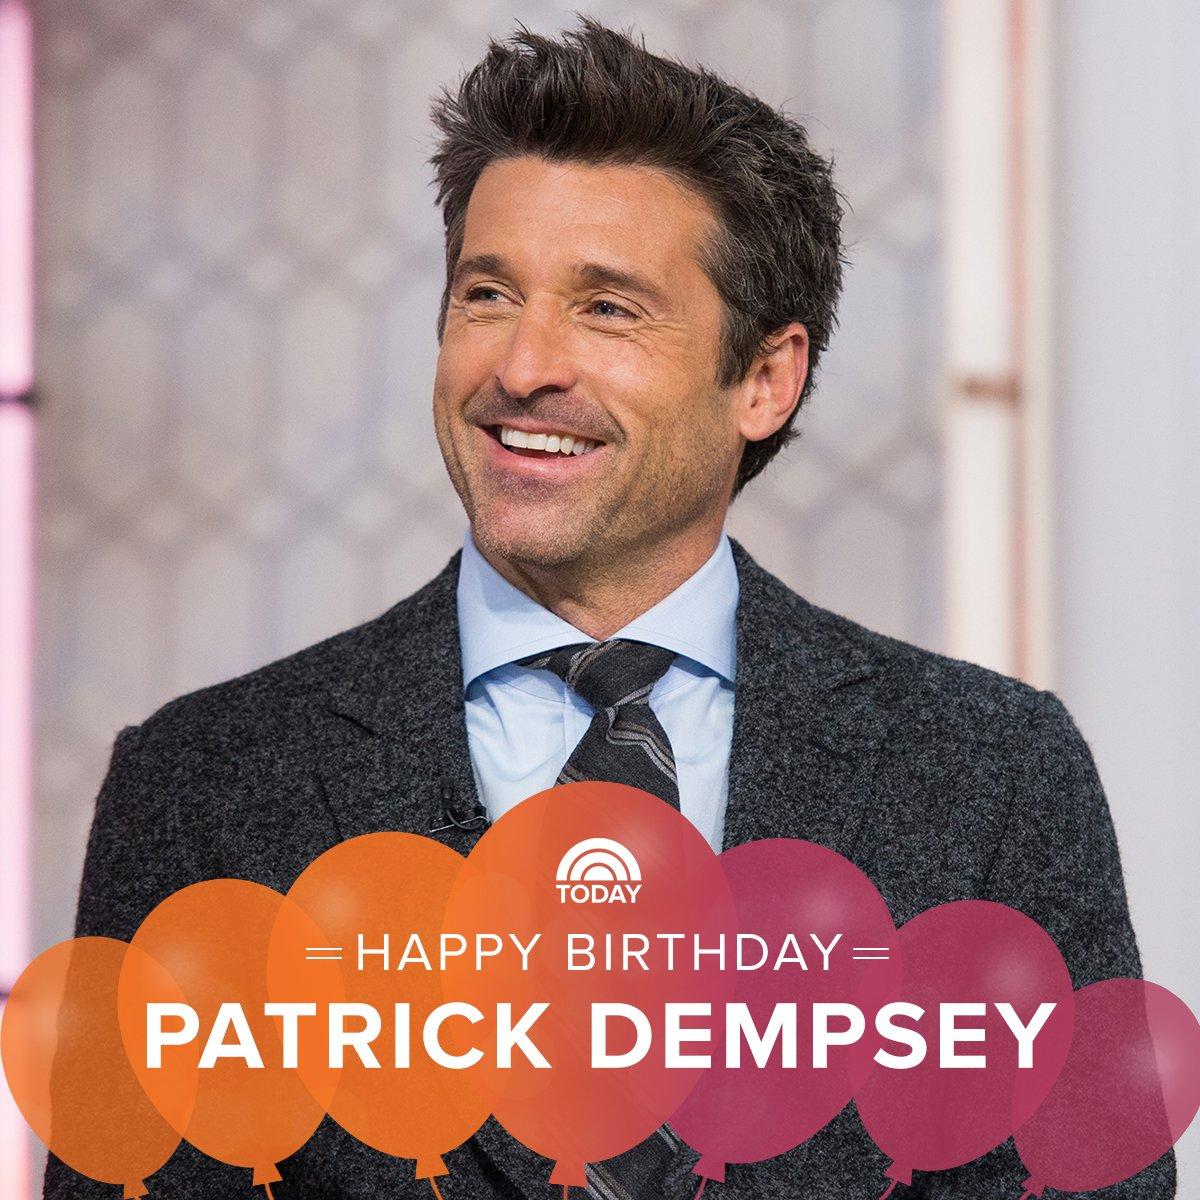 Remessageed TODAY ( Happy birthday, Patrick Dempsey!